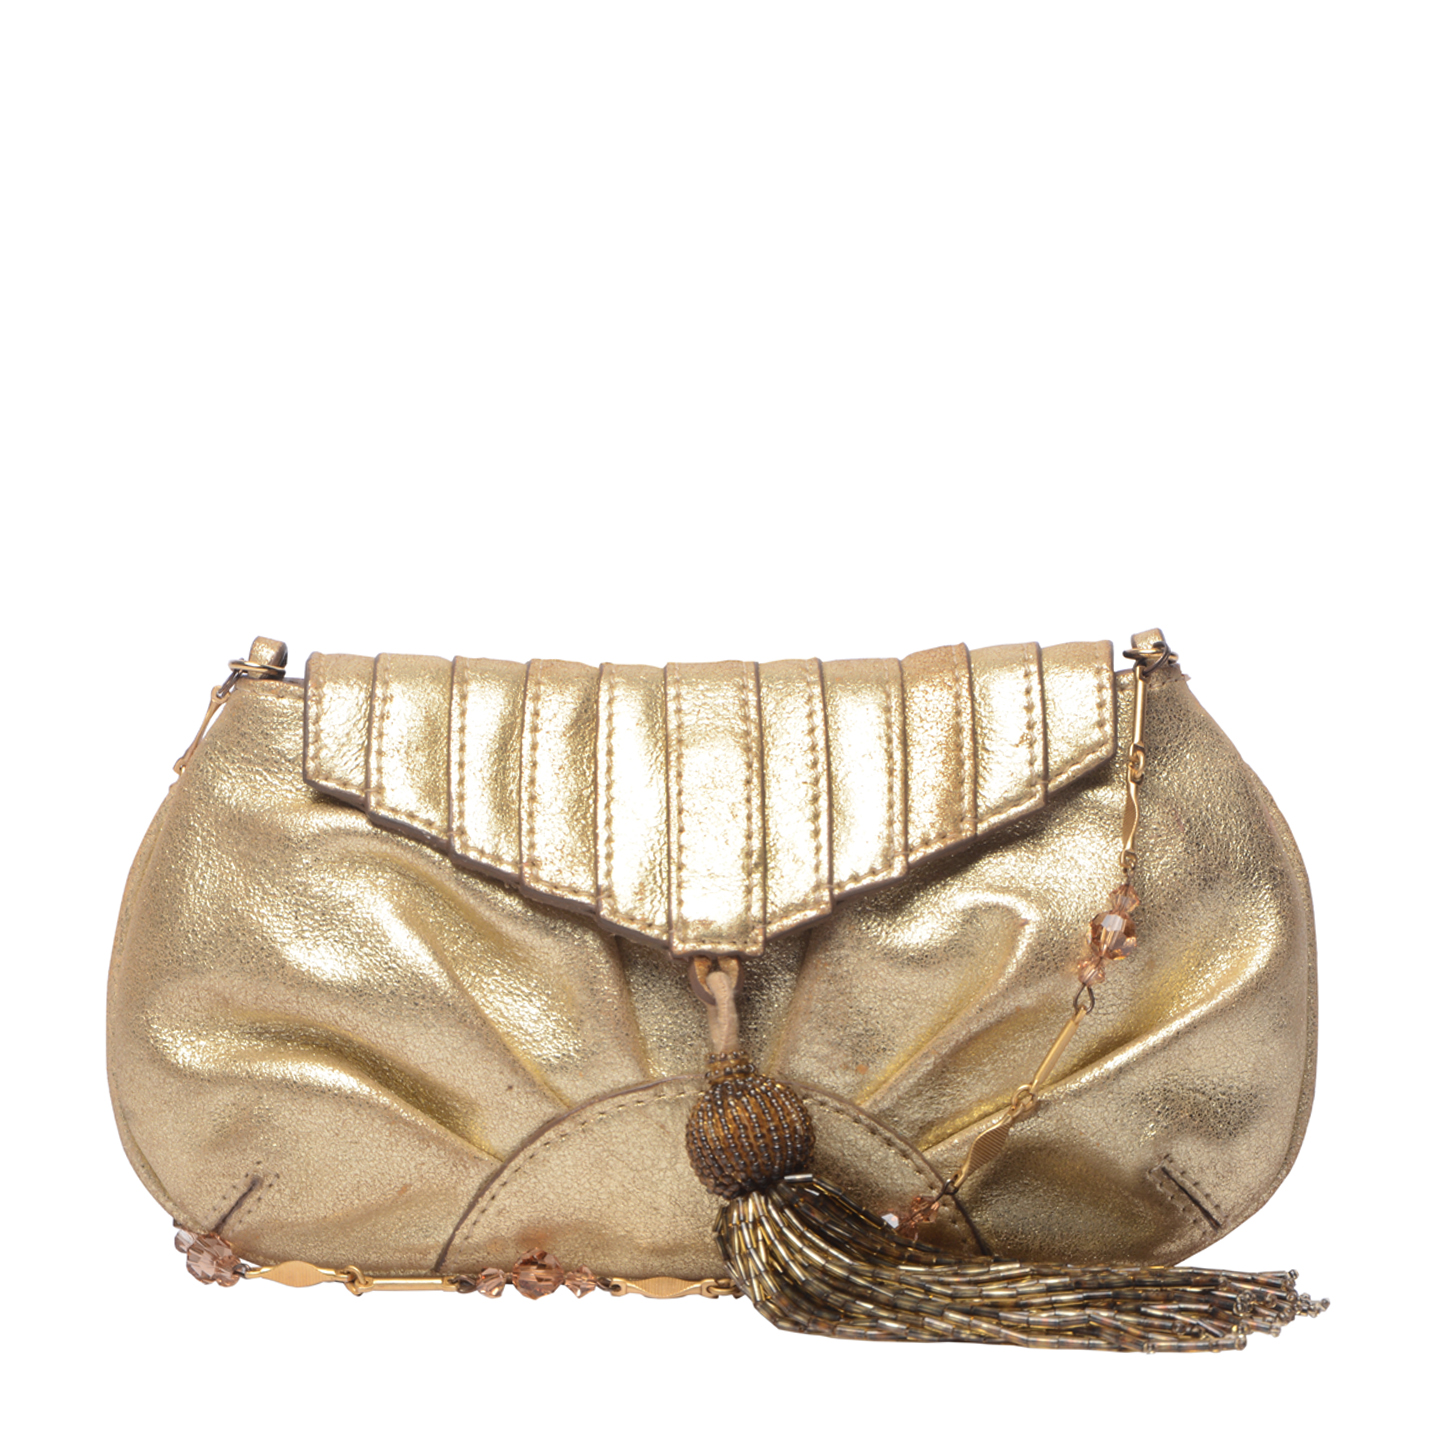 Anya Hindmarch Metallic Gold Leather Clutch (01)